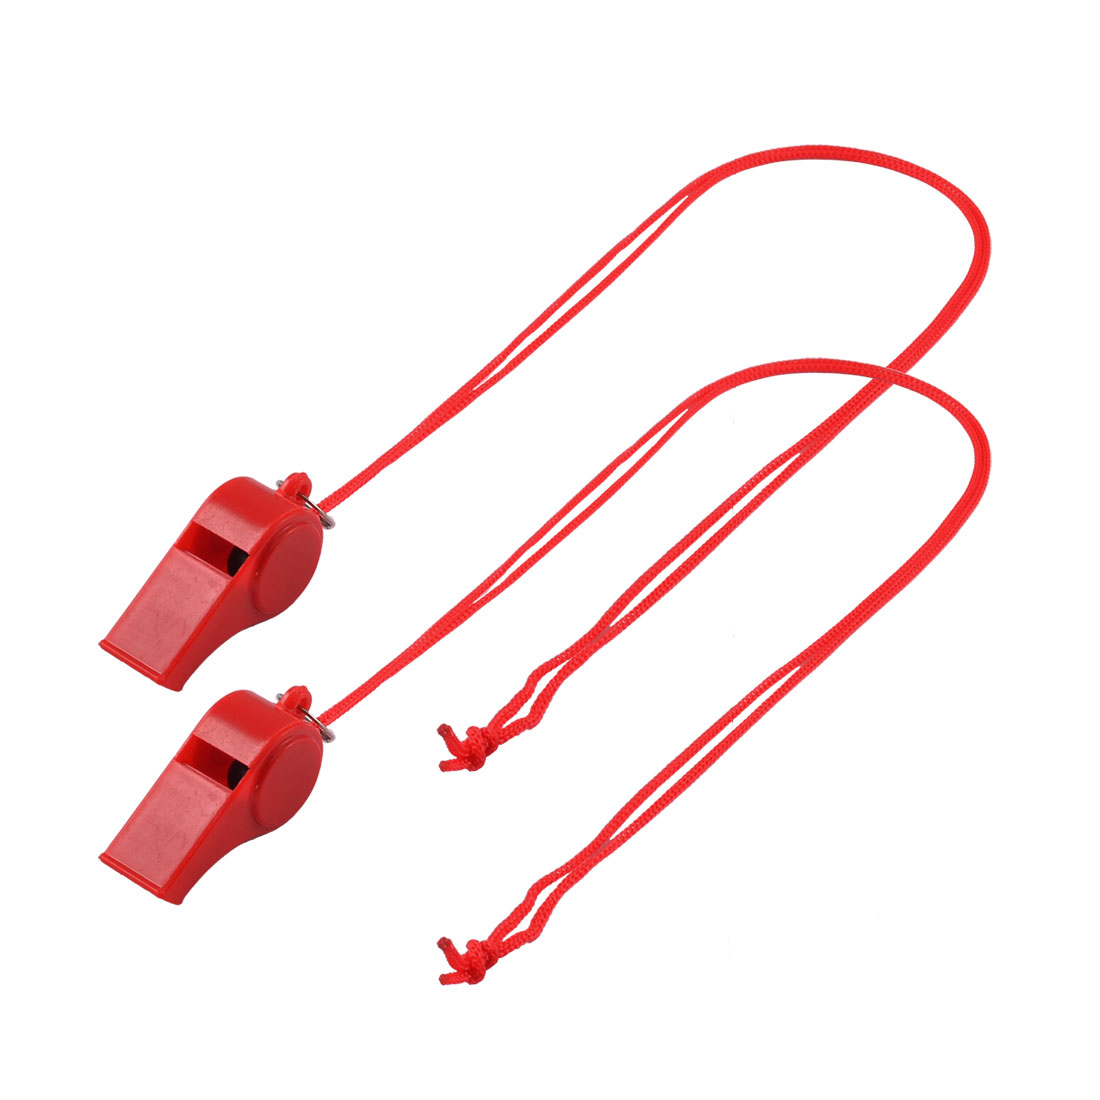 Outdoor Sports Match Neck String Red Plastic Referee Whistles 2PCS